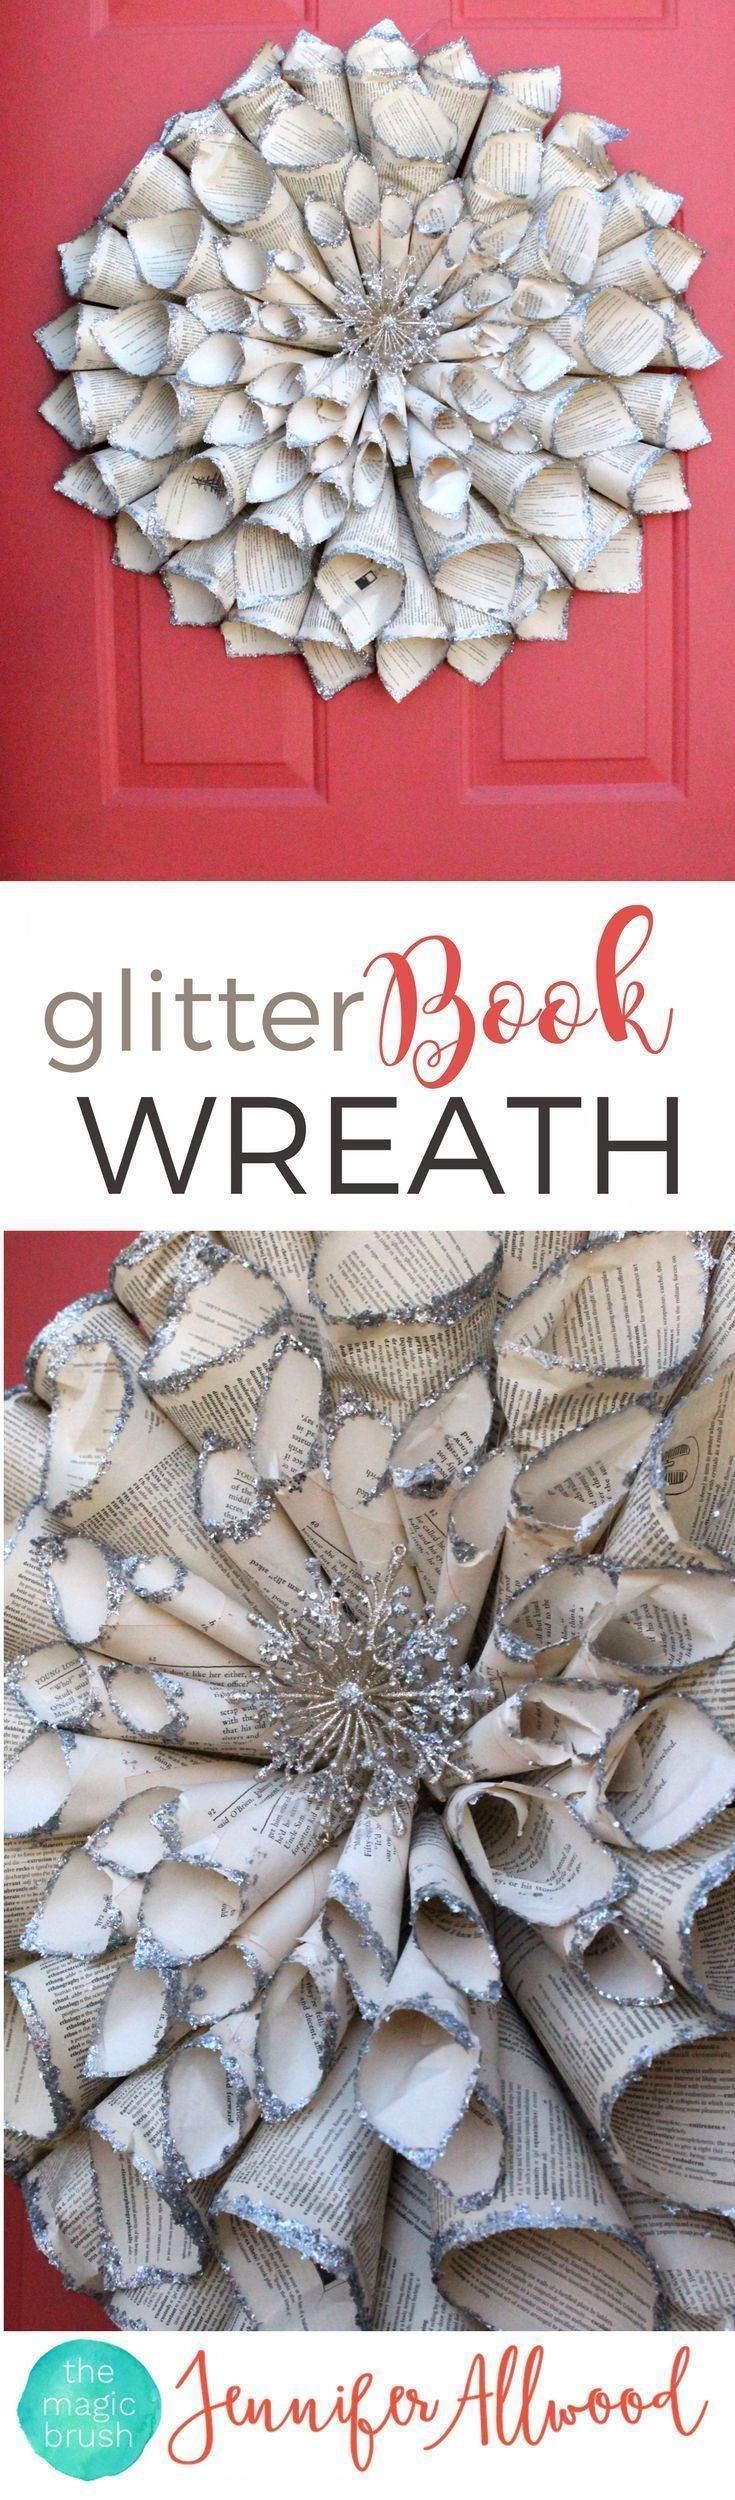 Info's : Repurpose old books with a DIY Glitter Vintage Book Wreath Door Decor   Magic Brush   Door Decorating Ideas   Girls Night In Party Ideas   #diy #diyhomedecor #holiday #christmas #home #christmasdecor #holidaydecor #wreaths